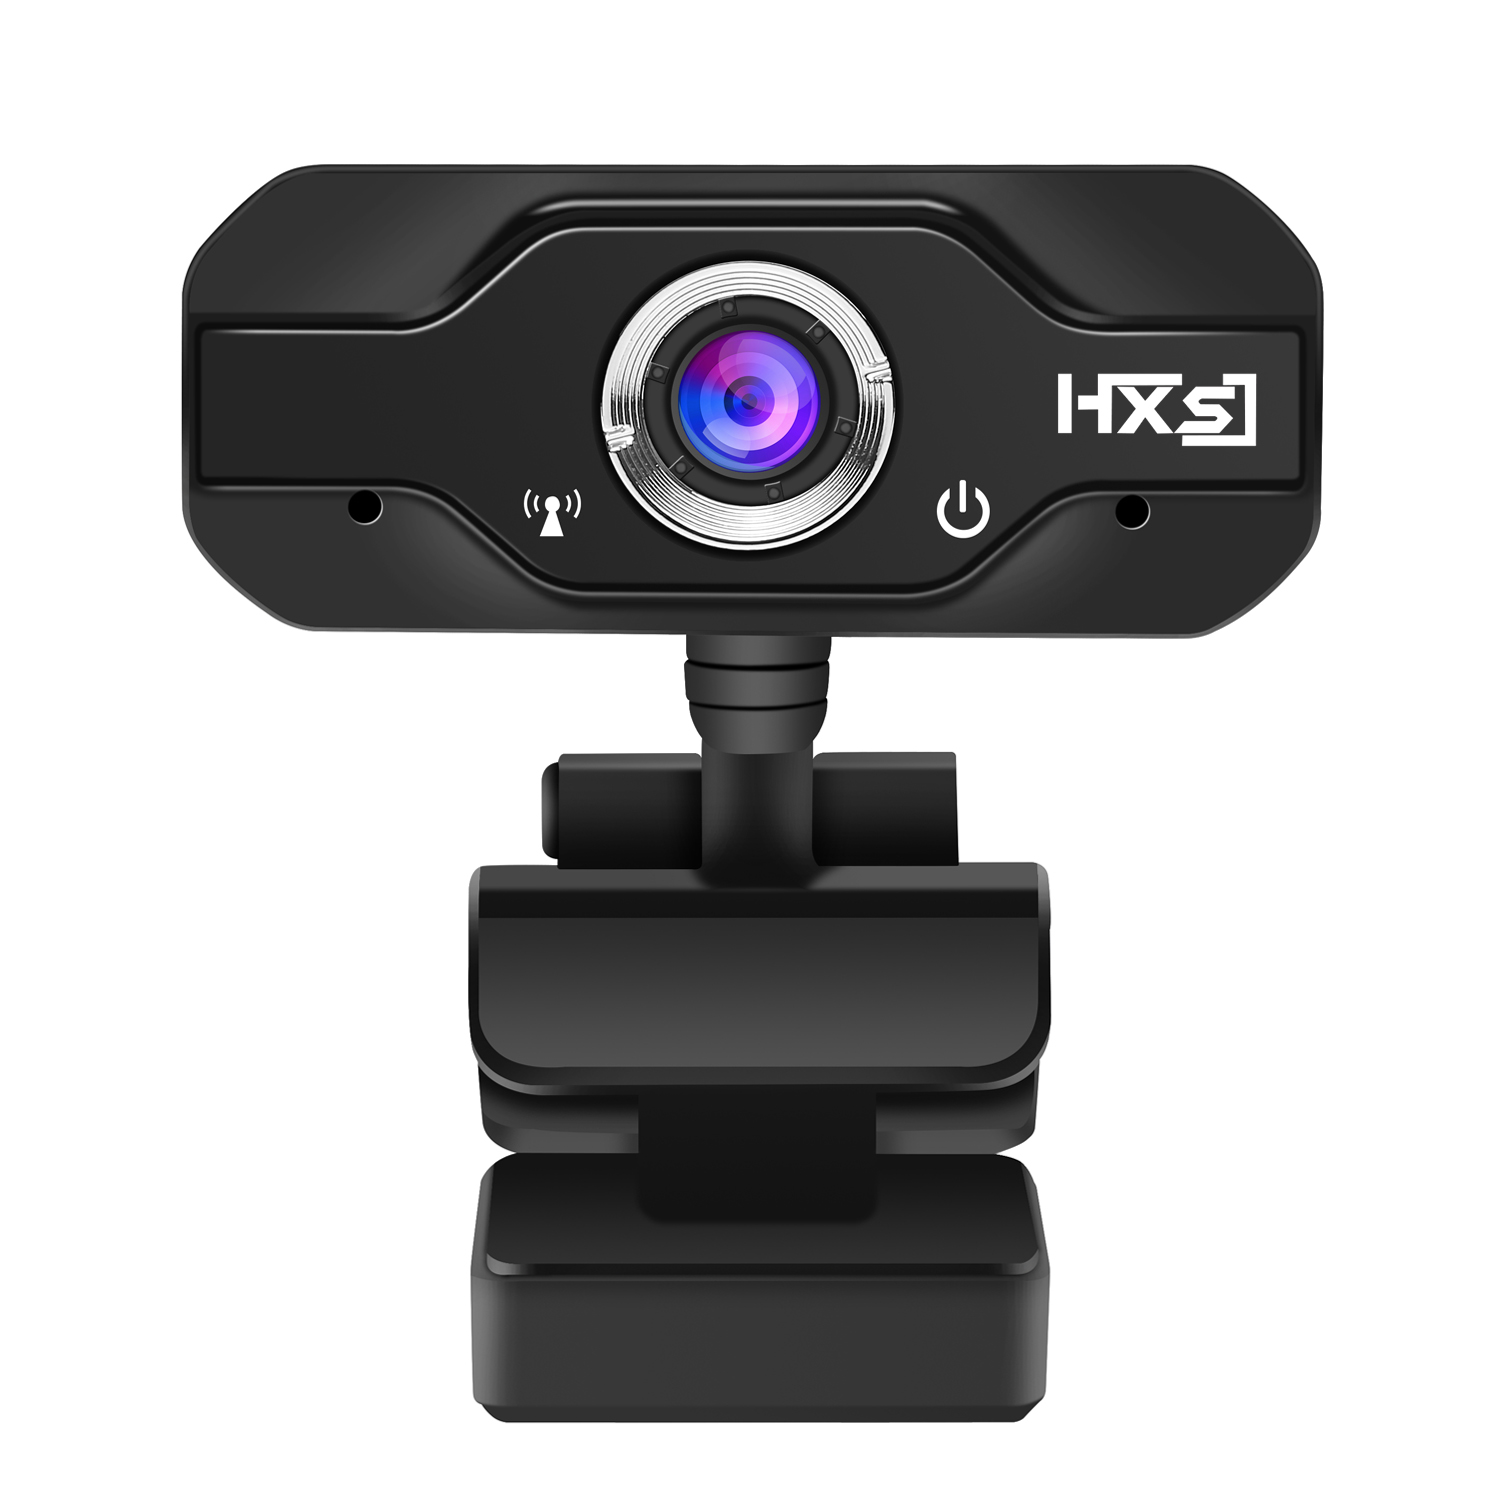 HXSJ HD 720P CMOS Sensor Webcam Built-in Microphone Adj